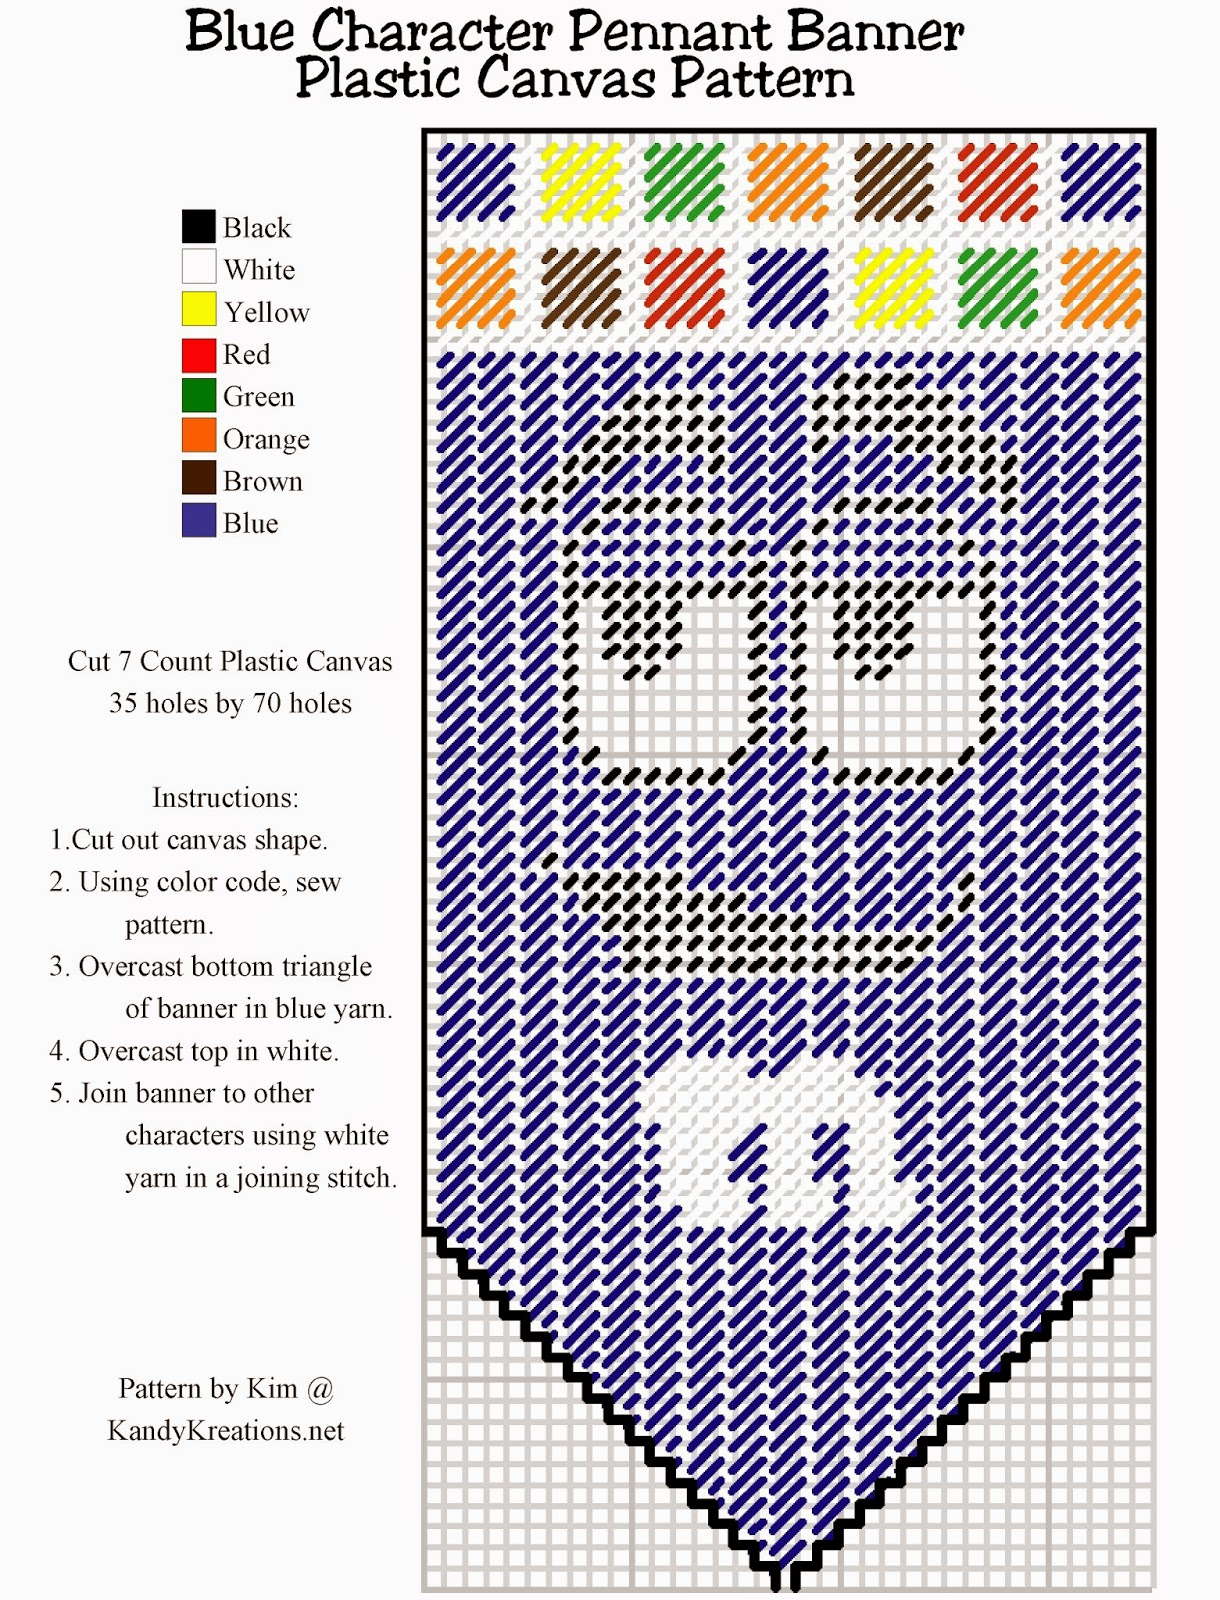 Make your own pennant banner with the blue M&M character using this Plastic canvas pattern freebie.  Simply right click and save this pattern to create your own party decoration or kitchen decor.